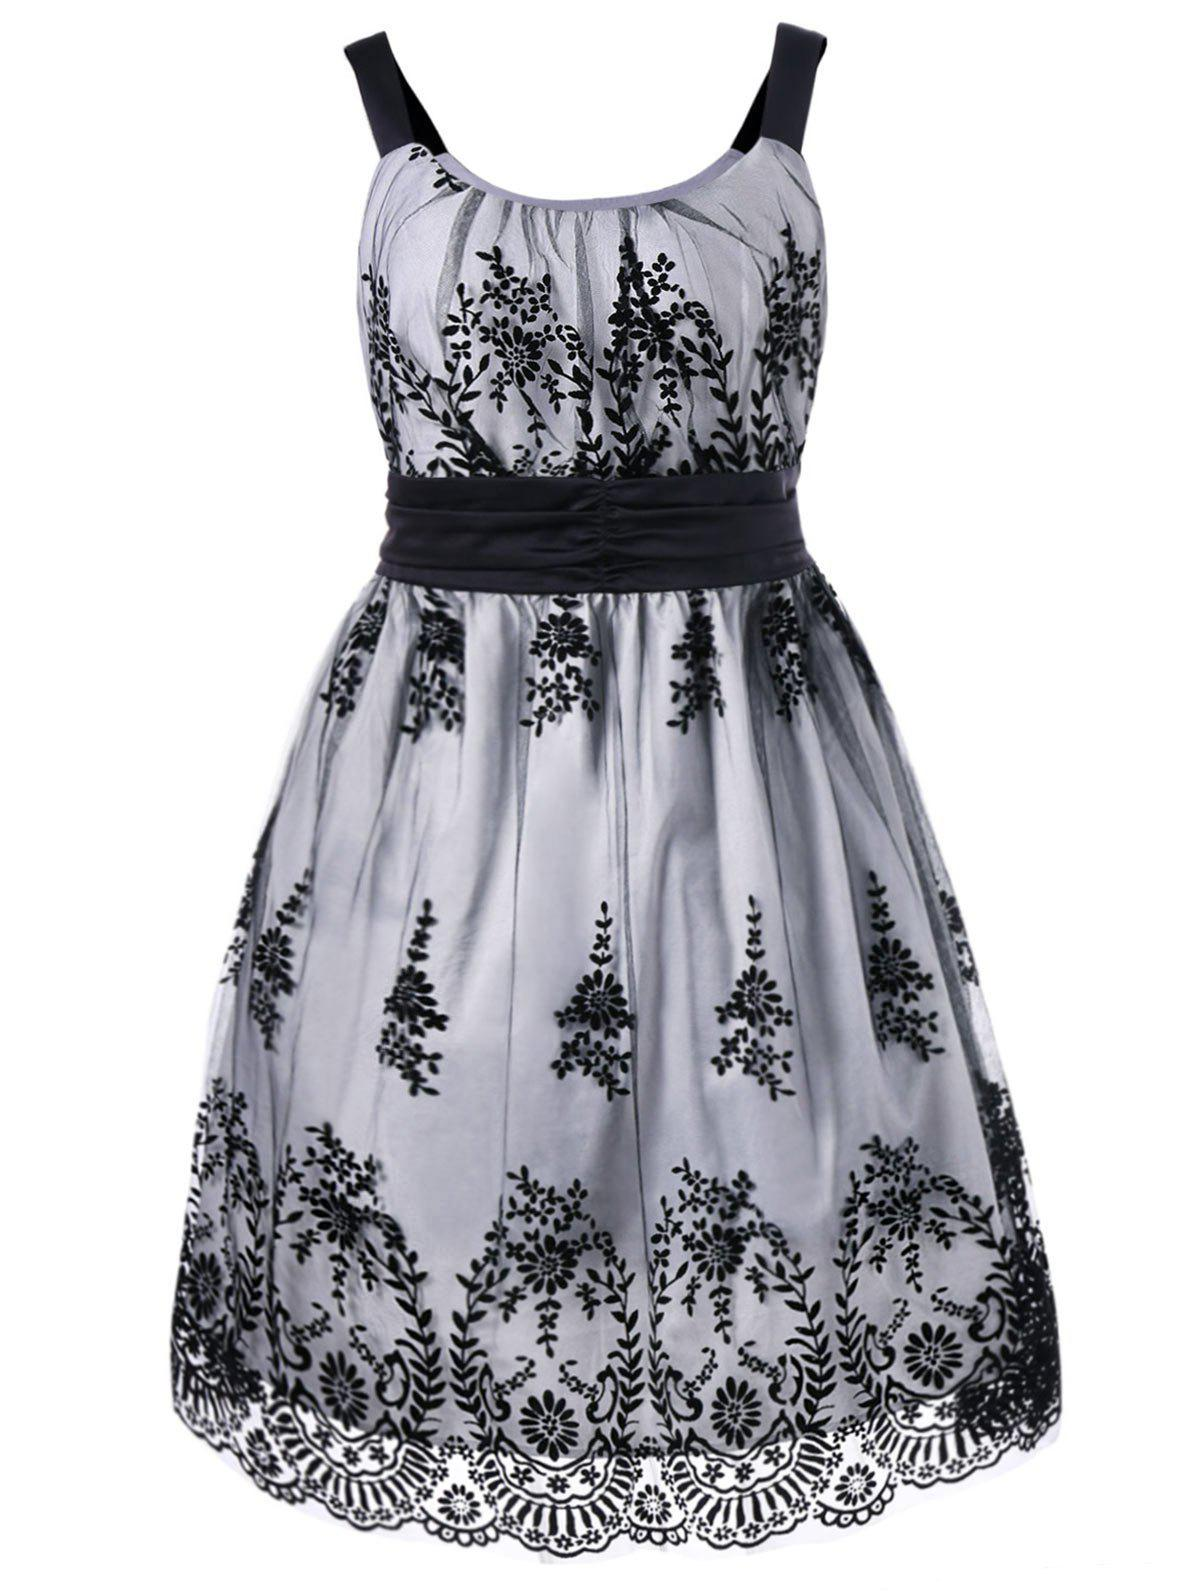 Plus Size High Waist Mini Ball Gown Dress - WHITE/BLACK 4XL